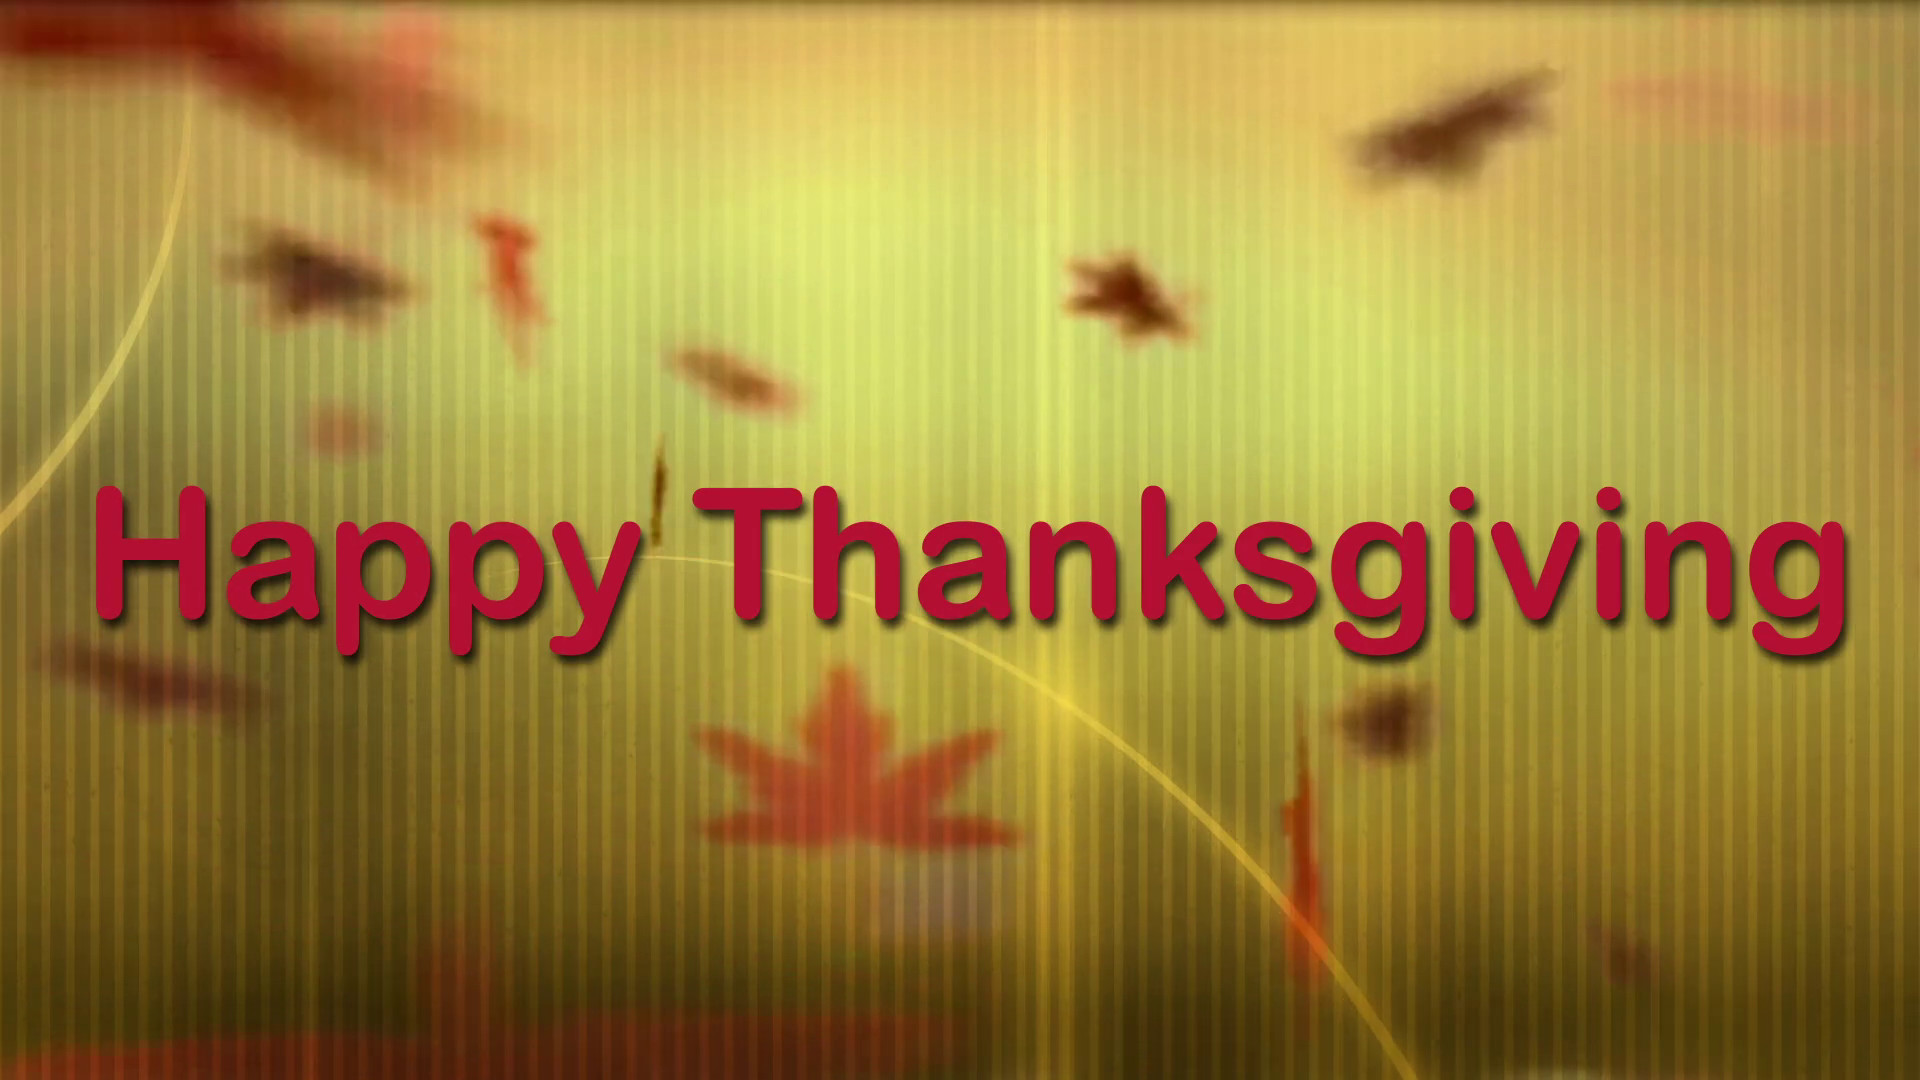 1920x1080 Happy Thanksgiving 02 - Virtual Green Screen Background Loop